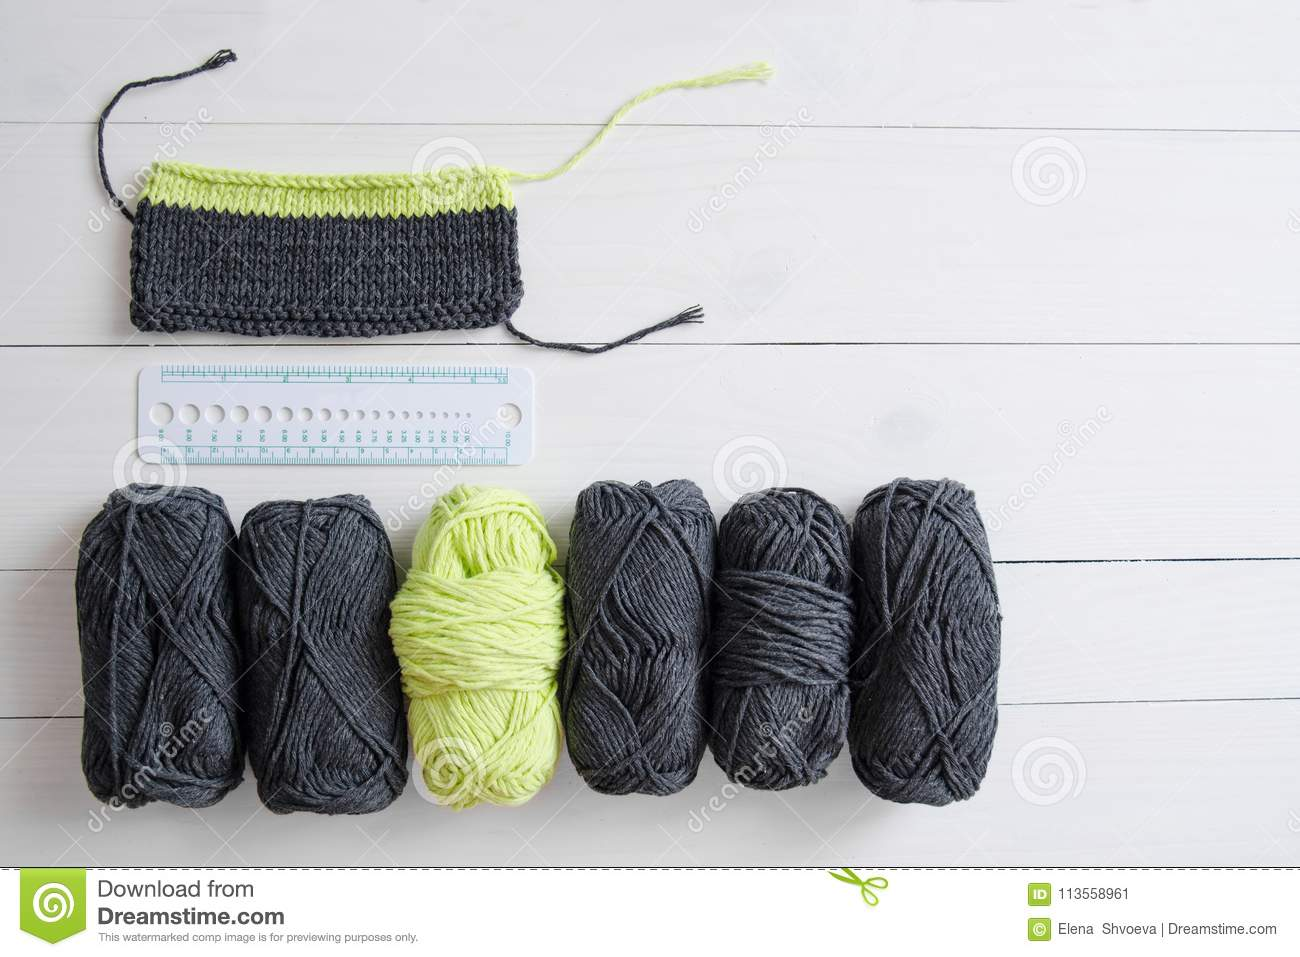 Knitting yarn with knitting pattern and ruler on white wooden background. The concept of Hobbies, crafts, the beginning of a new k